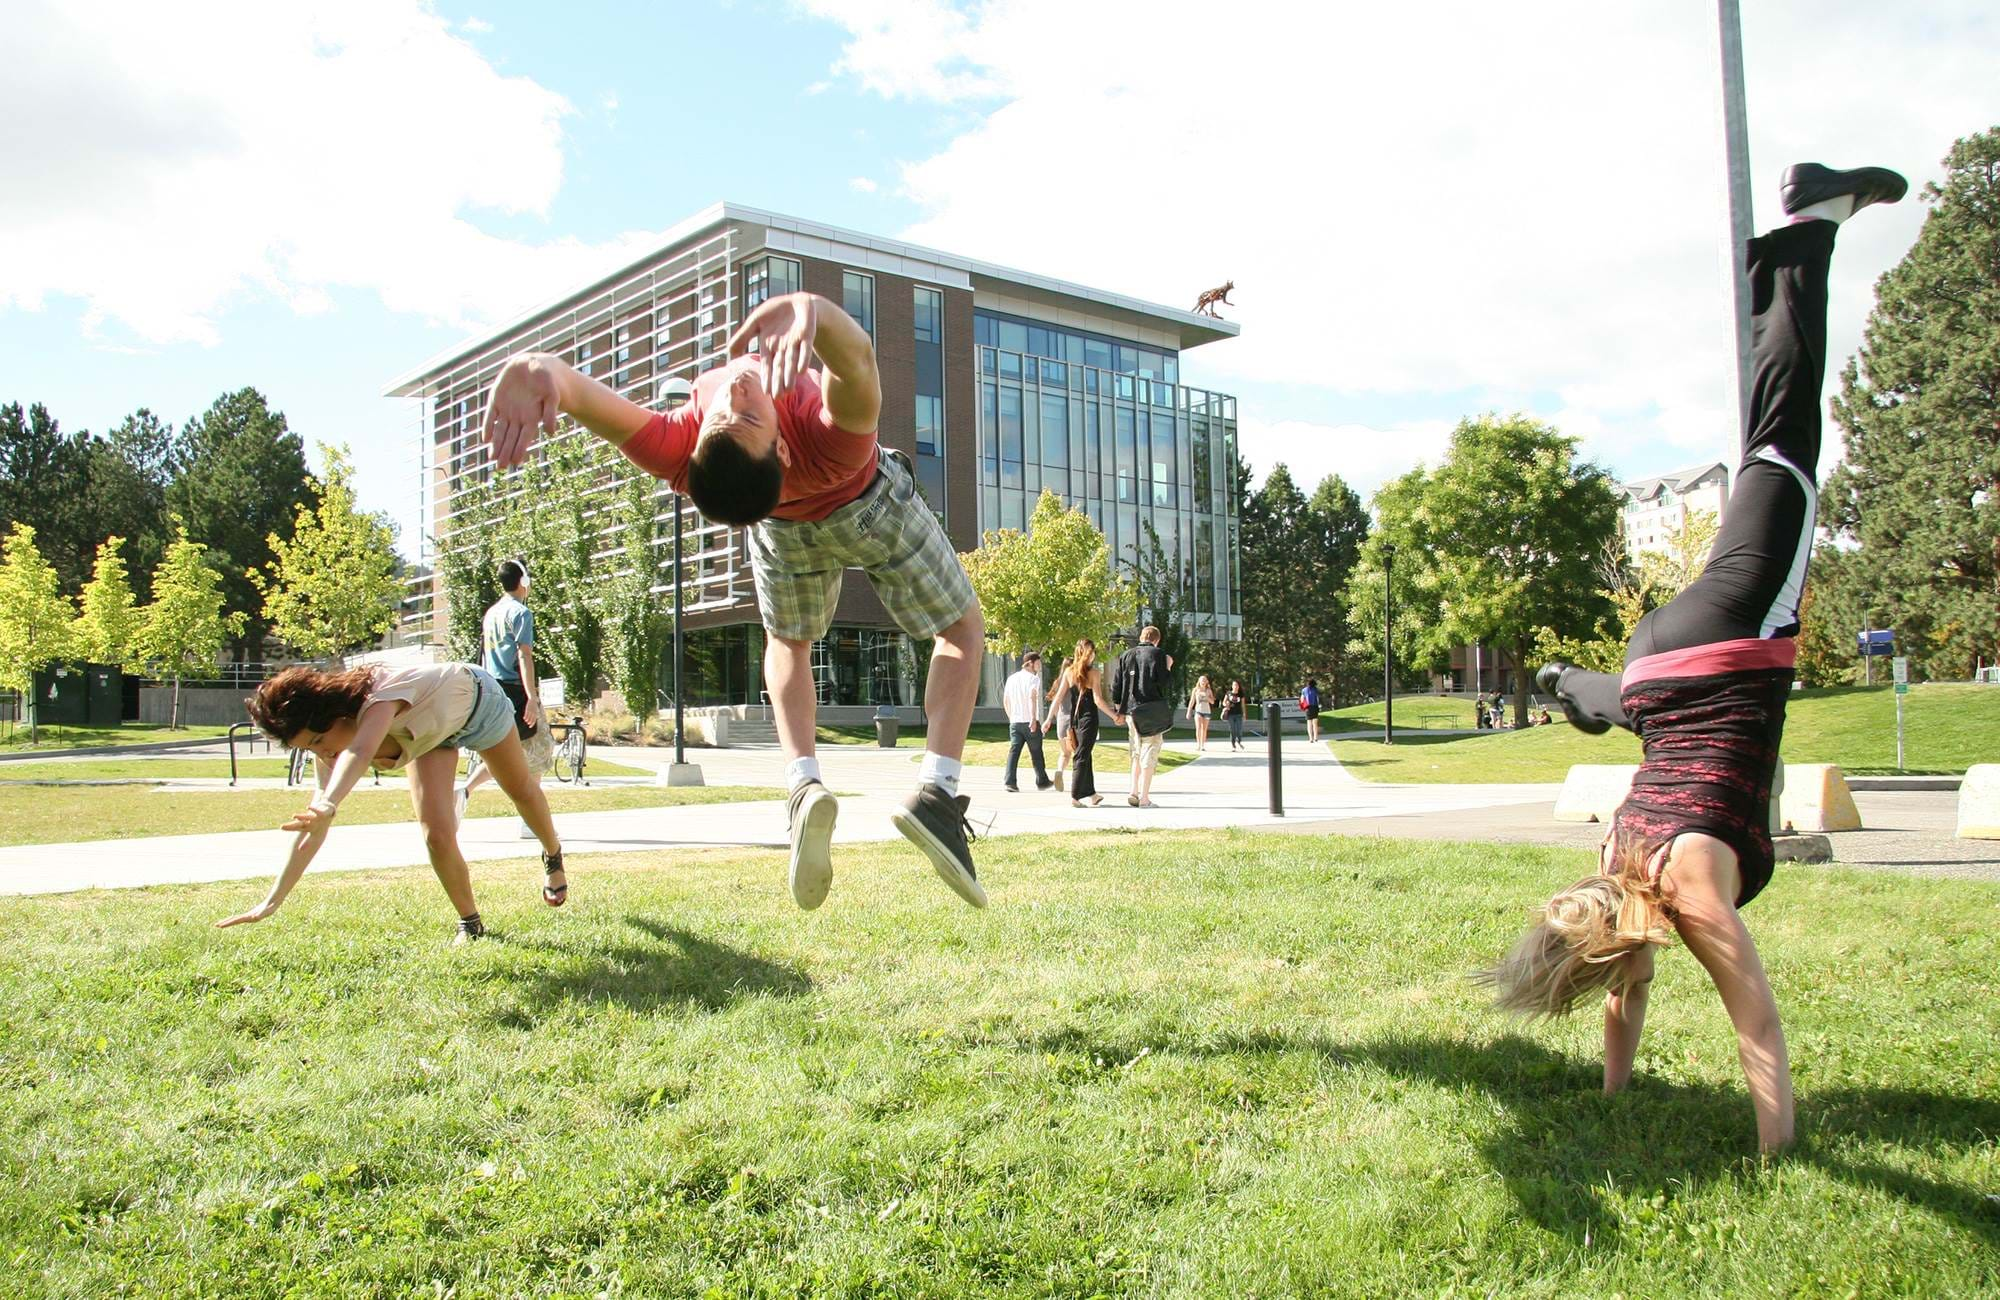 Students doing backflips on campus in Kamloops